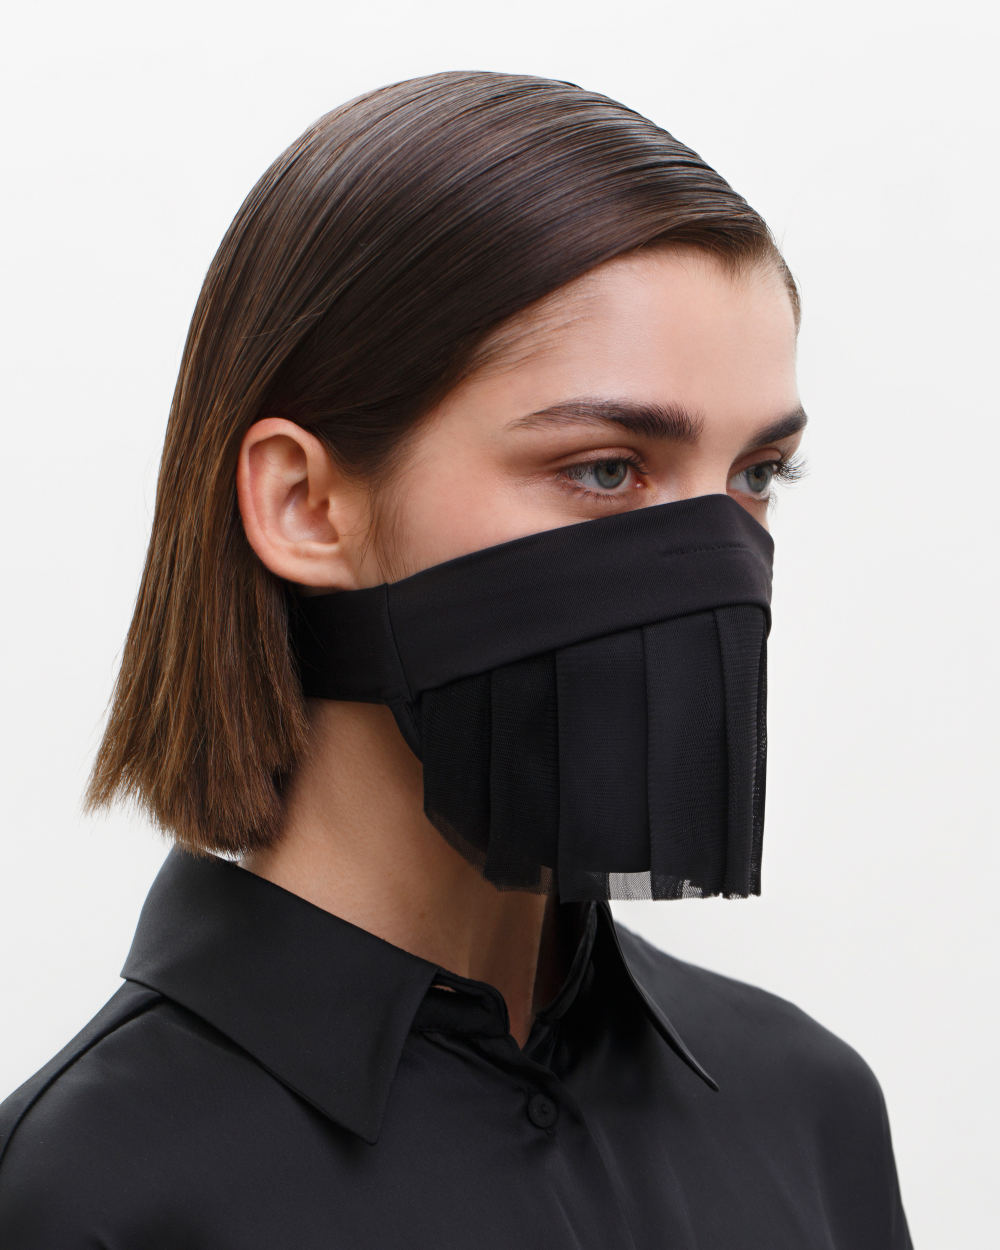 Couture Face Covering with a Pleated Veil, Ear Strap-Free. The FAKOUT. Black